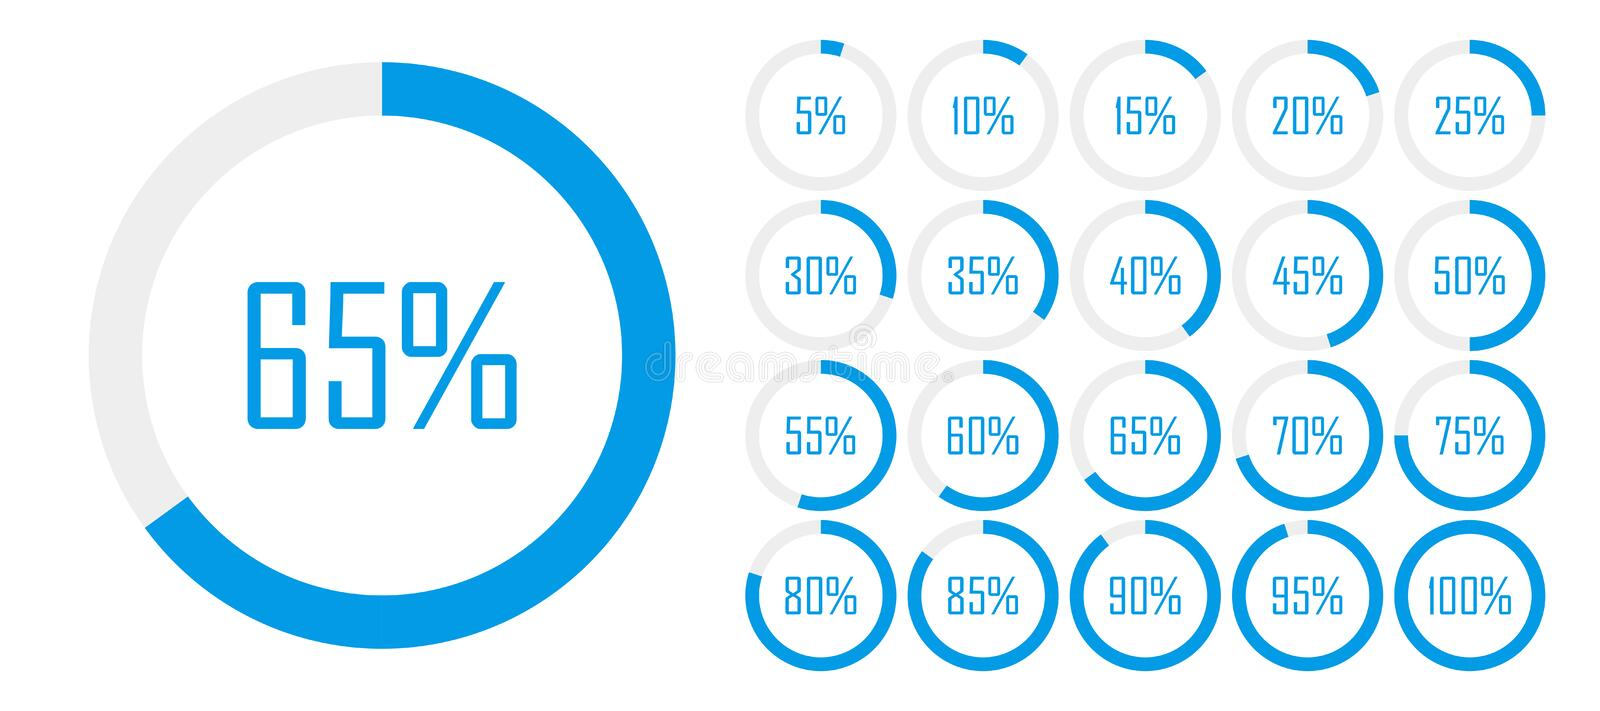 Set of circle percentage diagrams from 0 to 100 for web design, user UI interface or infographic - indicator with blue color. Vector illustration vector illustration